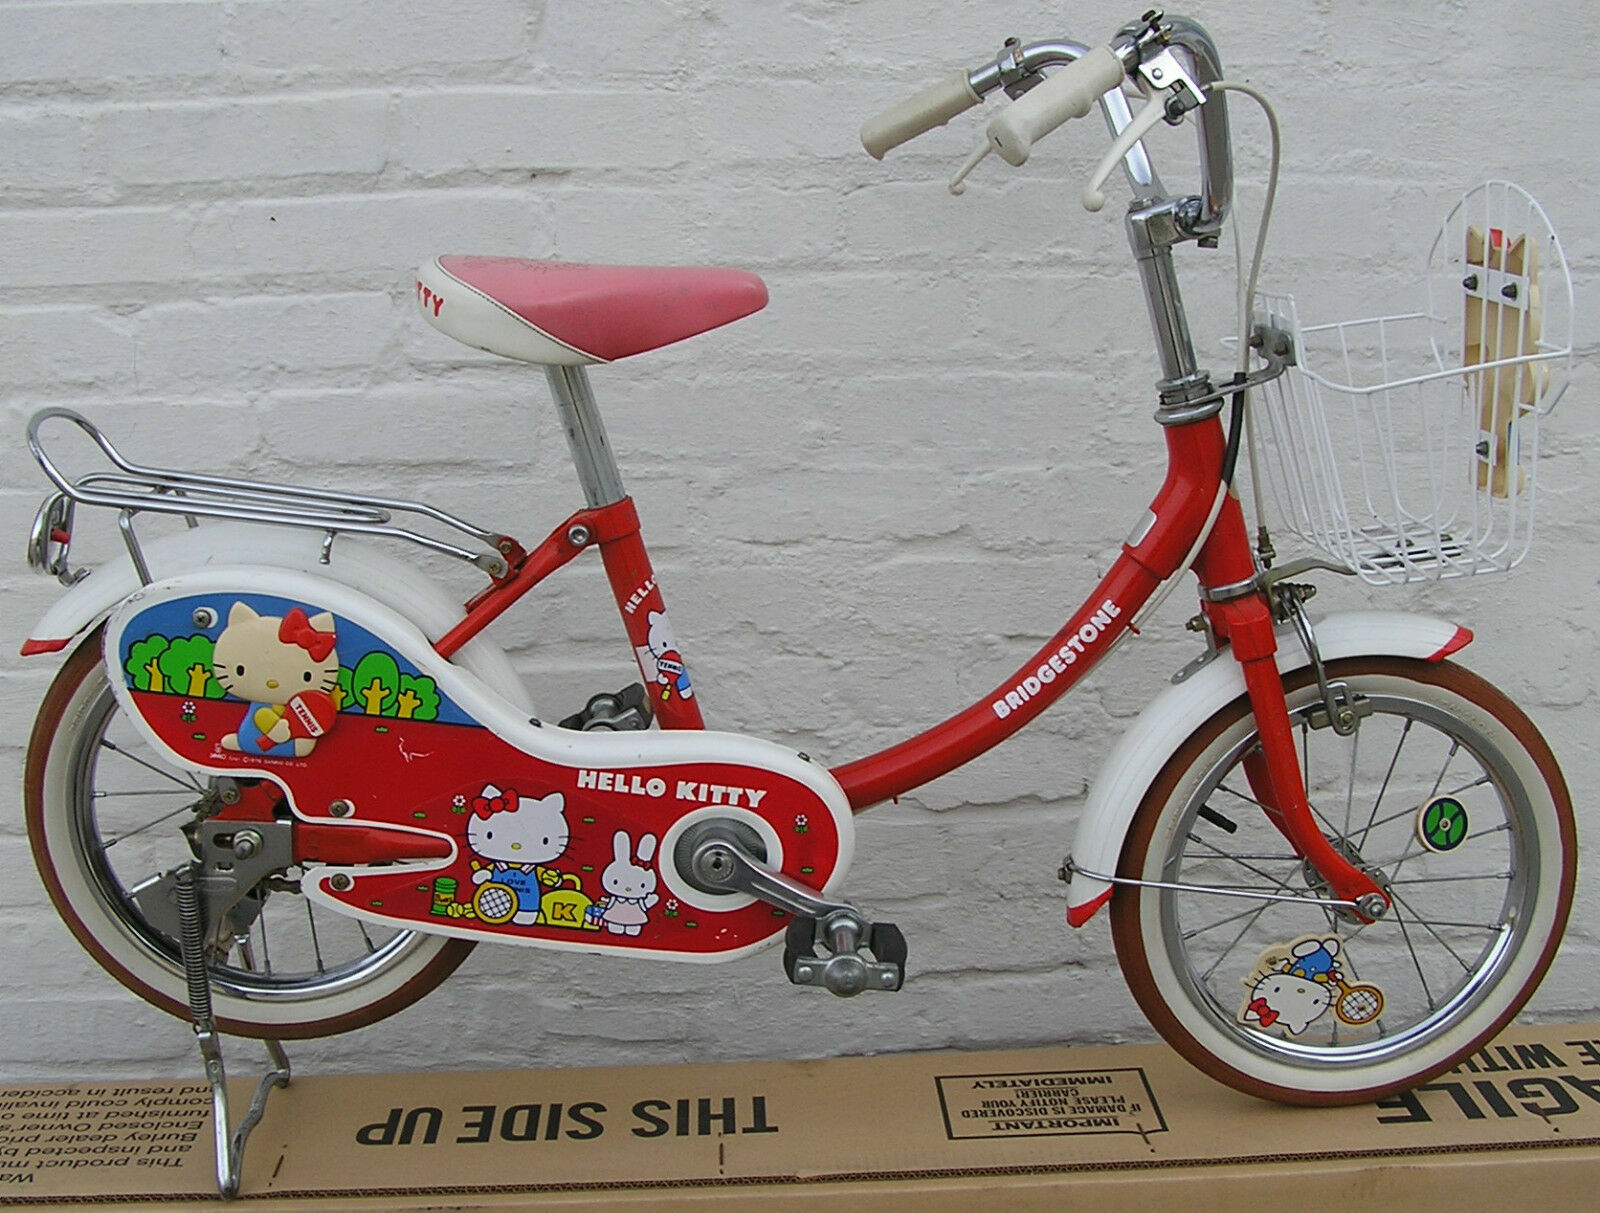 Bridgestone Hello  Kitty 14 wheel Campagnolo Phil Wood  ld's Bicycle '76 tennis  happy shopping